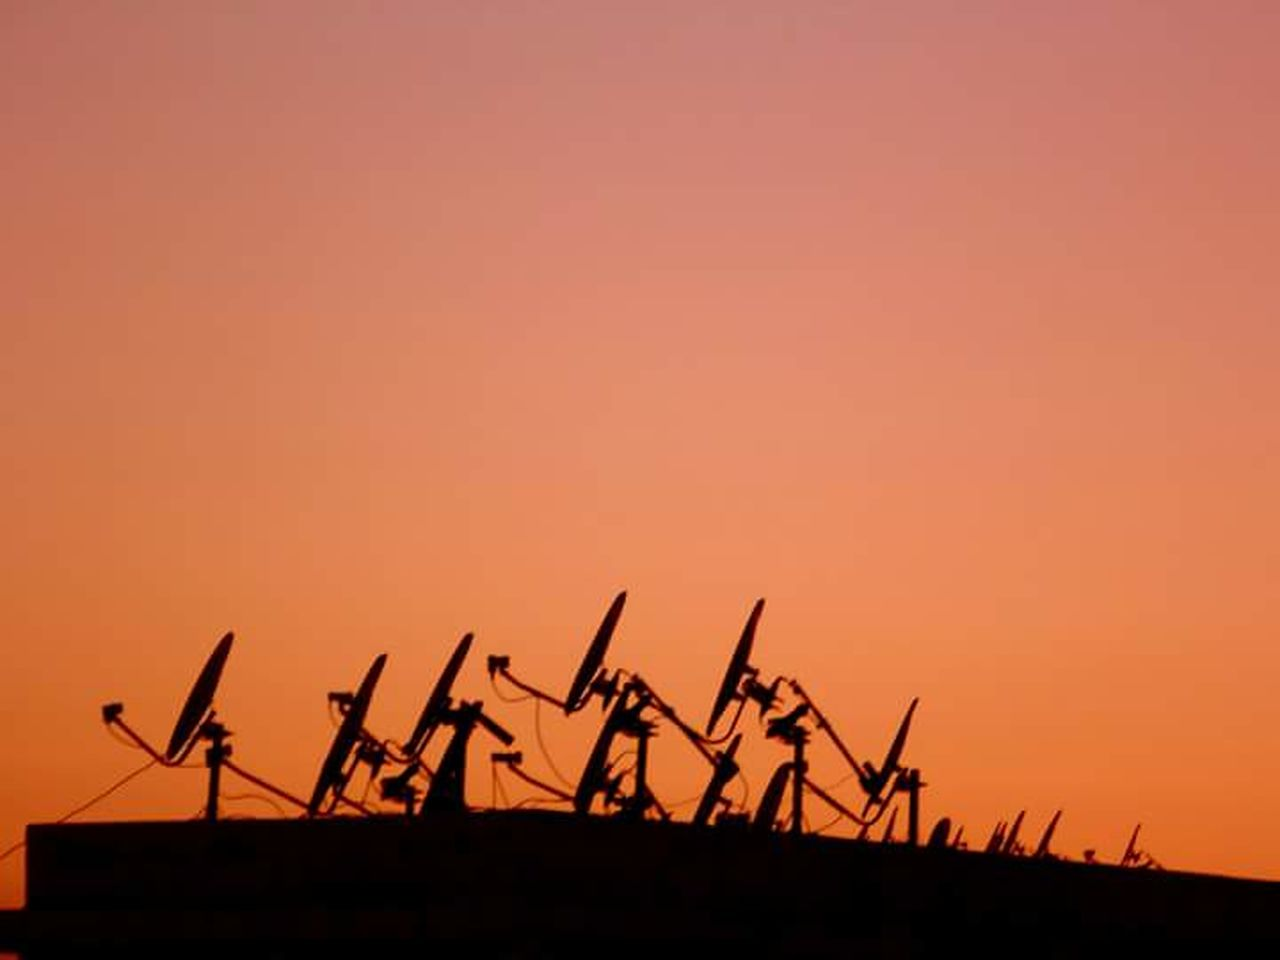 silhouette, sunset, no people, clear sky, sky, nature, outdoors, day, oil pump